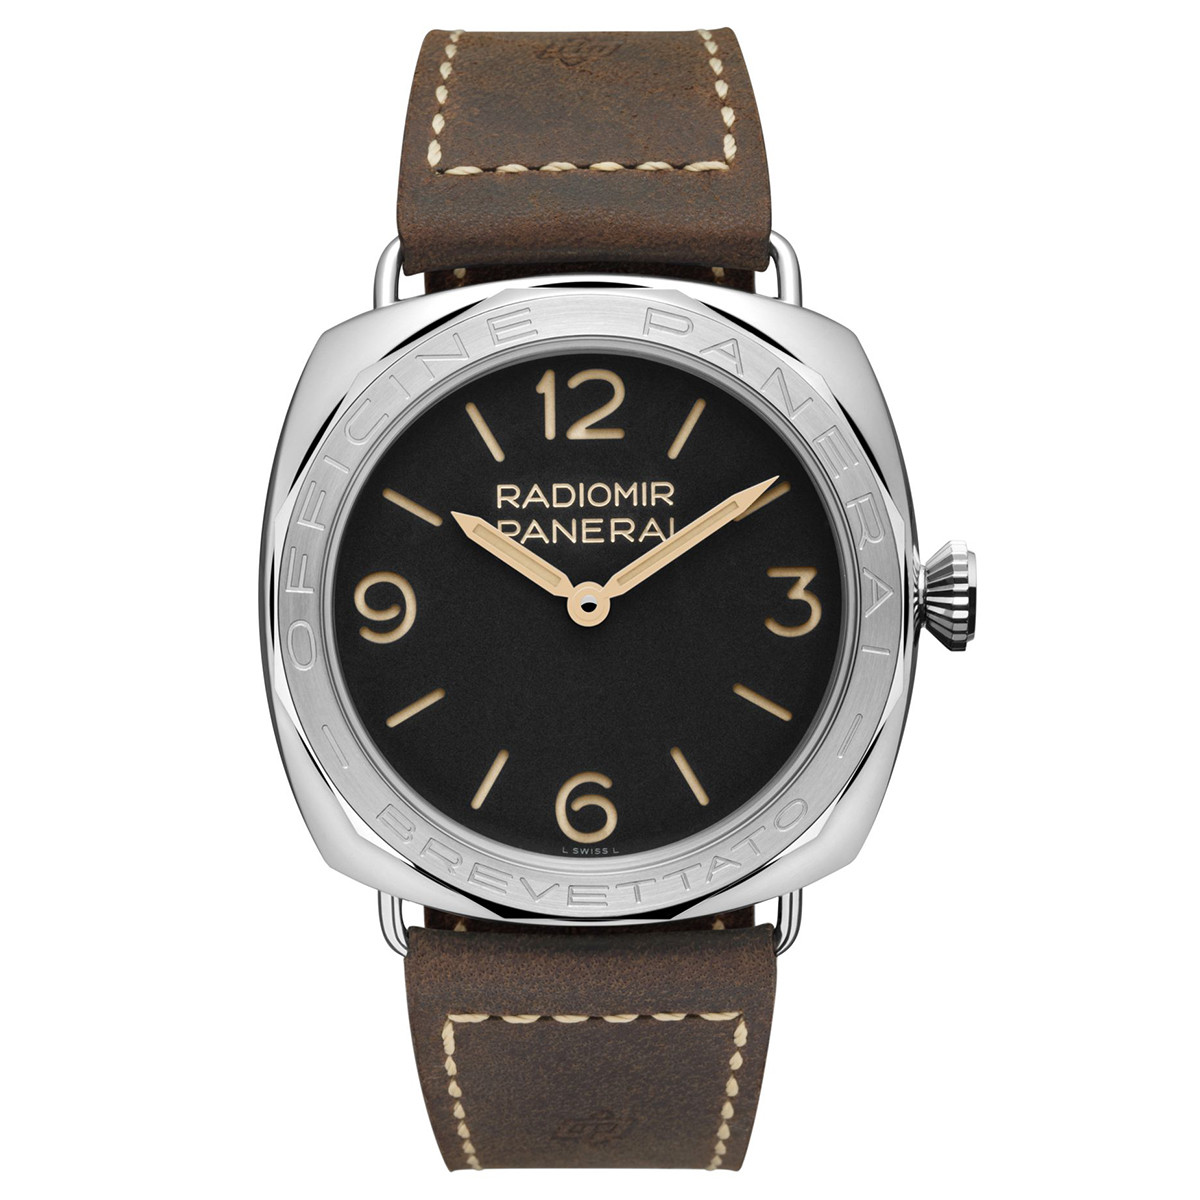 Radiomir 47mm Steel (PAM00685)